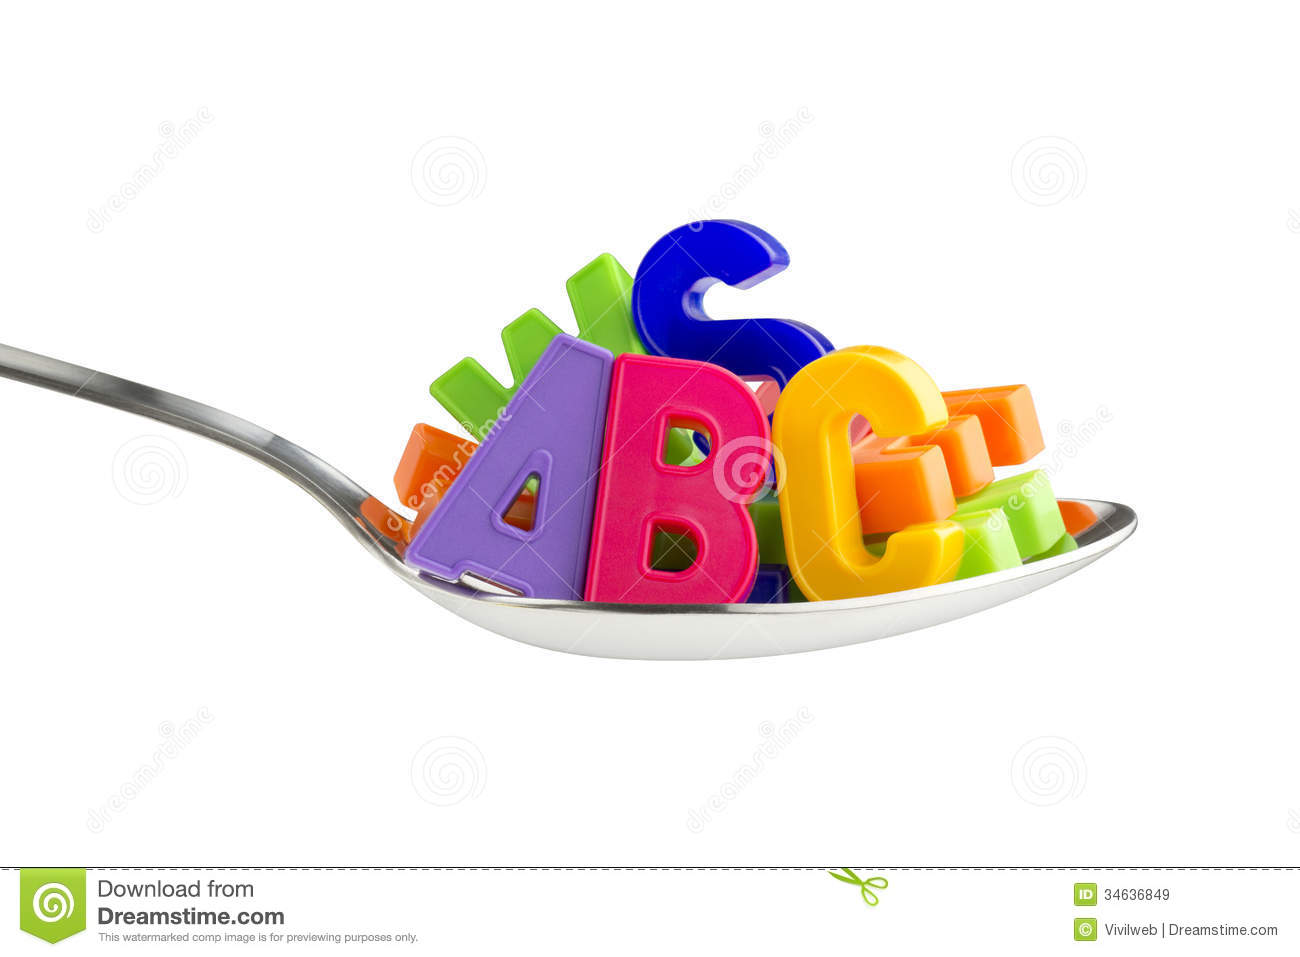 Food for thought clipart png transparent Food For Thought Royalty Free Stock Images - Image: 34636849 png transparent